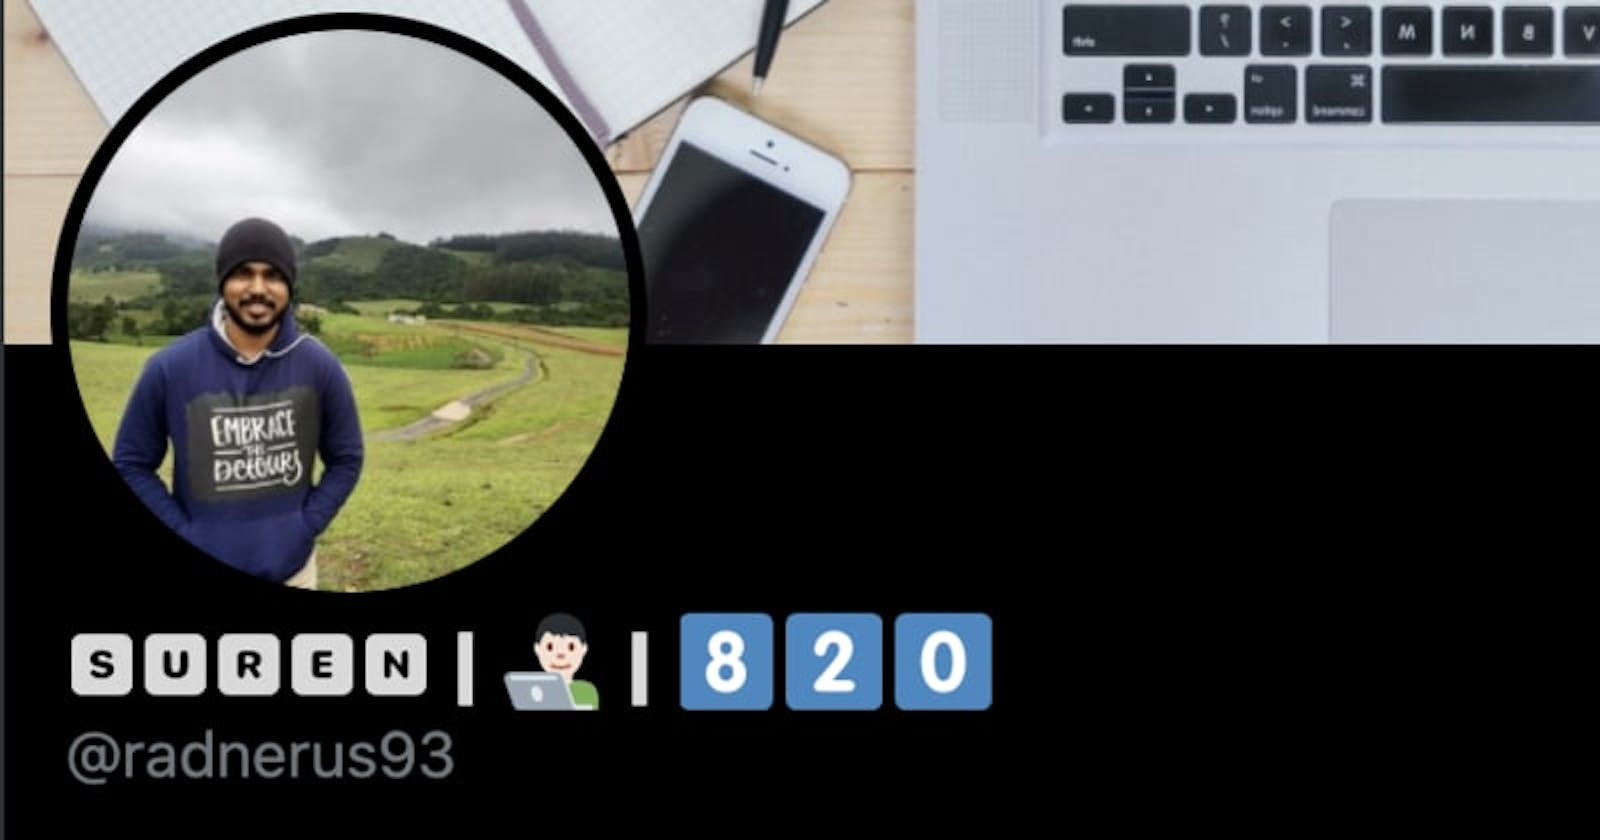 Twitter API is 🔥 - Followers Count